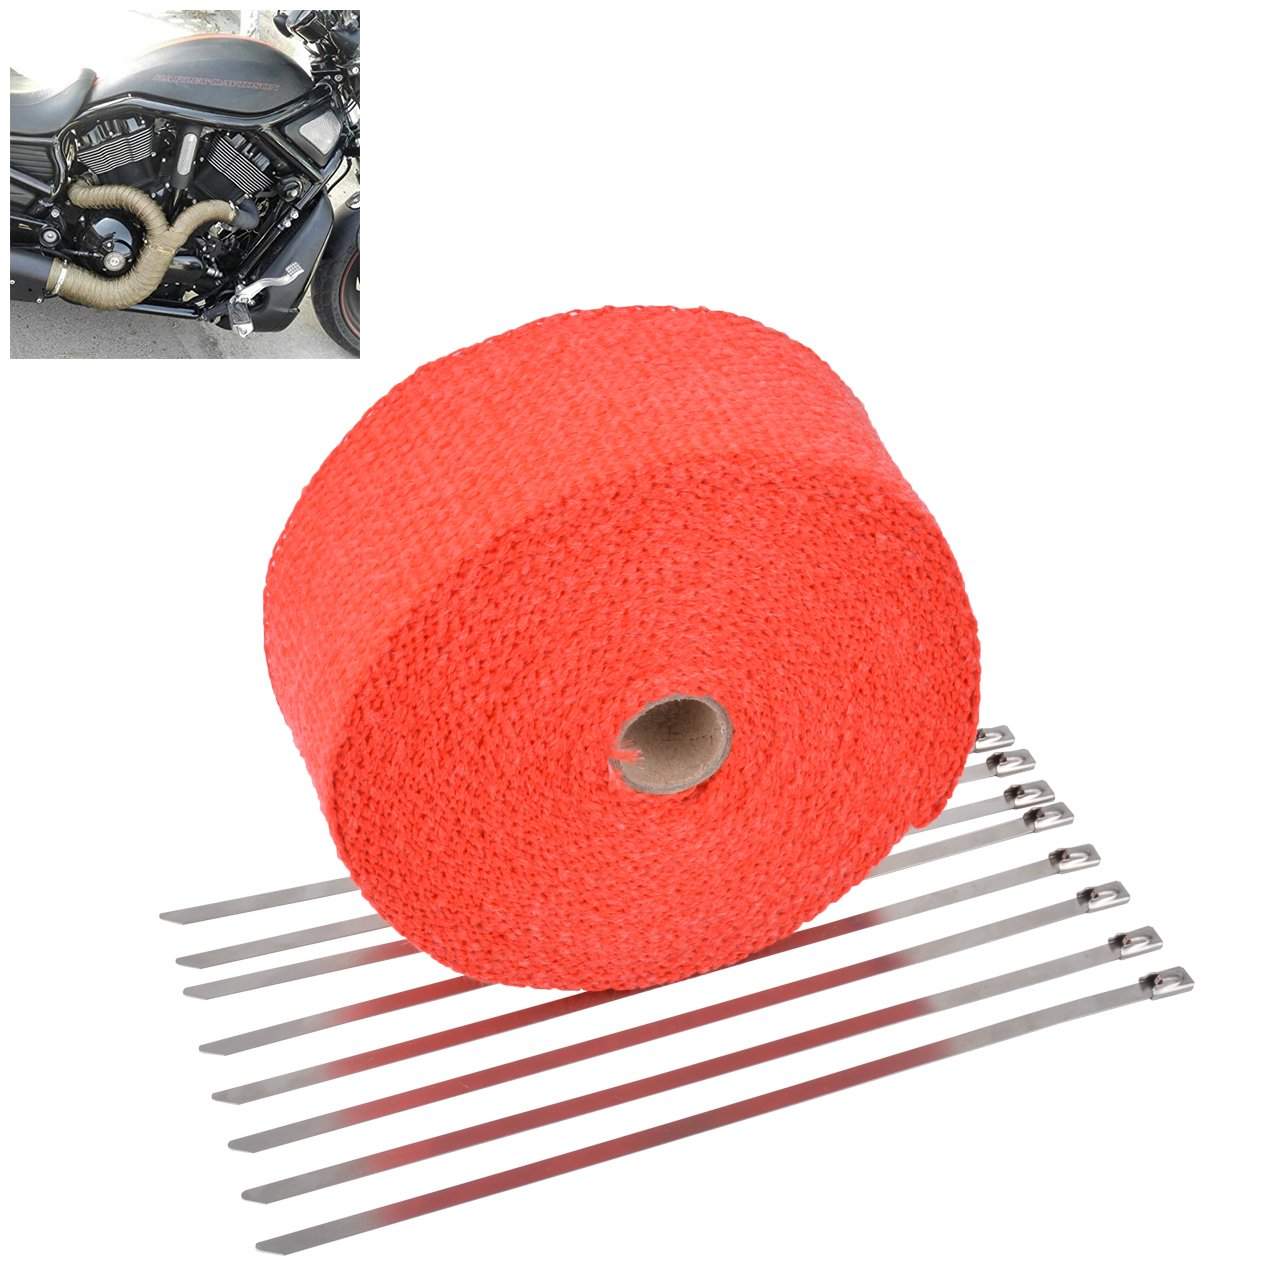 KaTur 2' x50Ft Exhaust Heat Wrap Tap Header Glassfiber Wrap Kit with 8pcs 11.8 inch Stainless Locking Ties (Red)